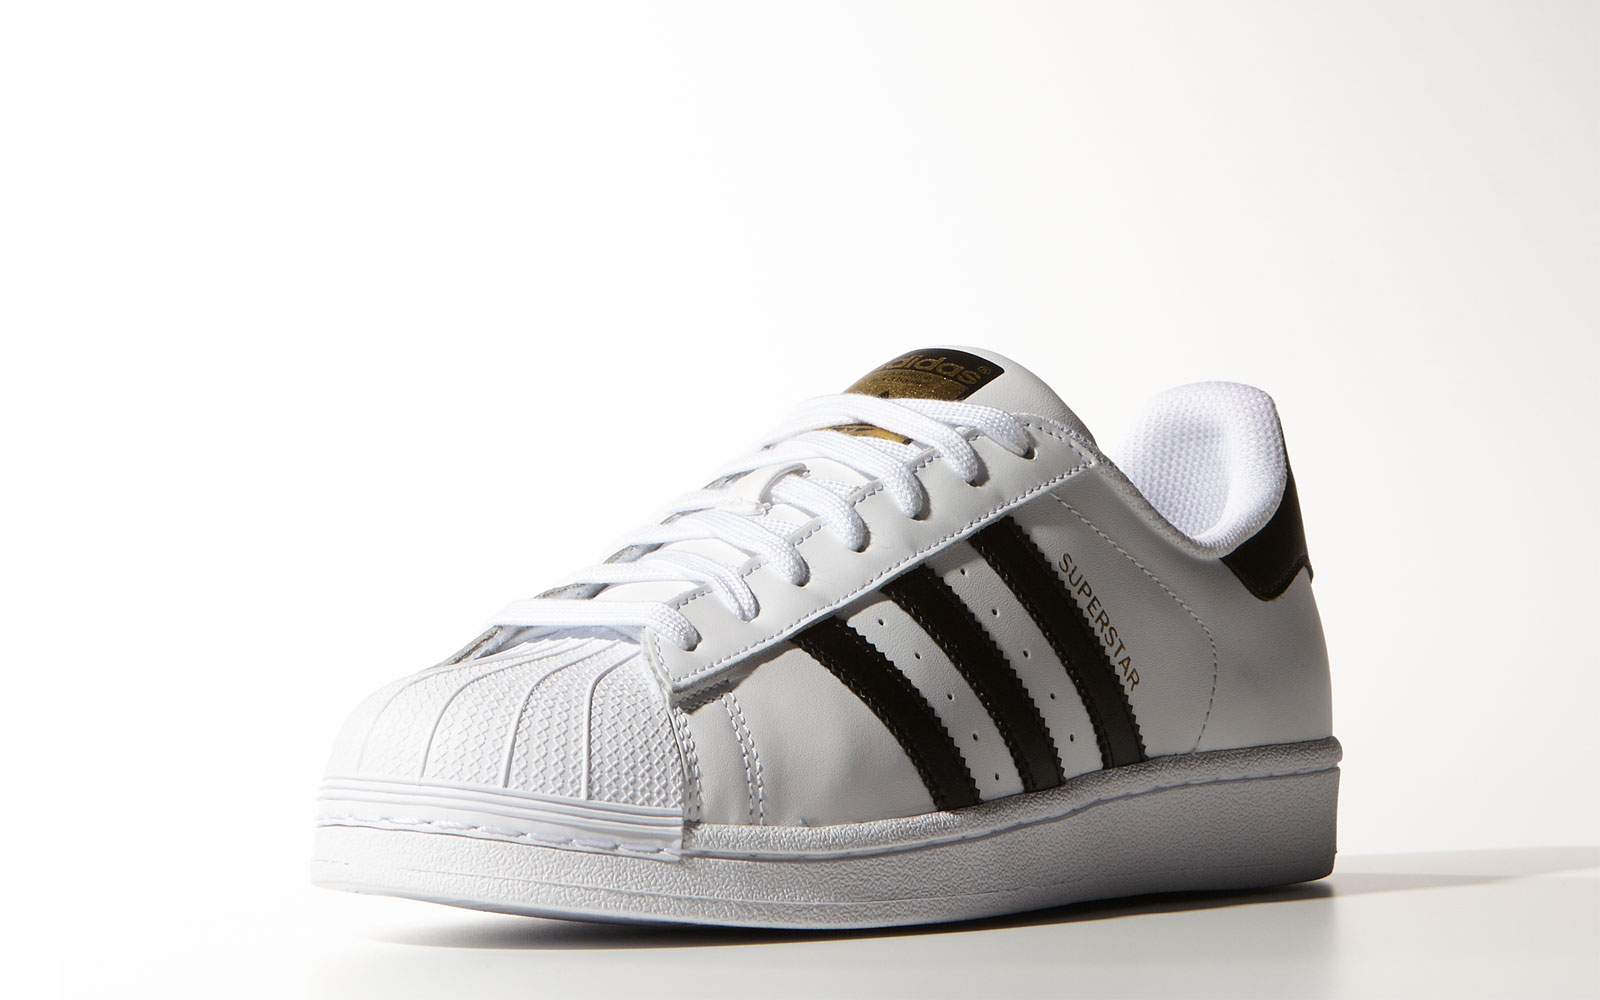 3285edaa48 For the All-Star  Adidas Superstar. The Best Comfy and Cute Sneakers